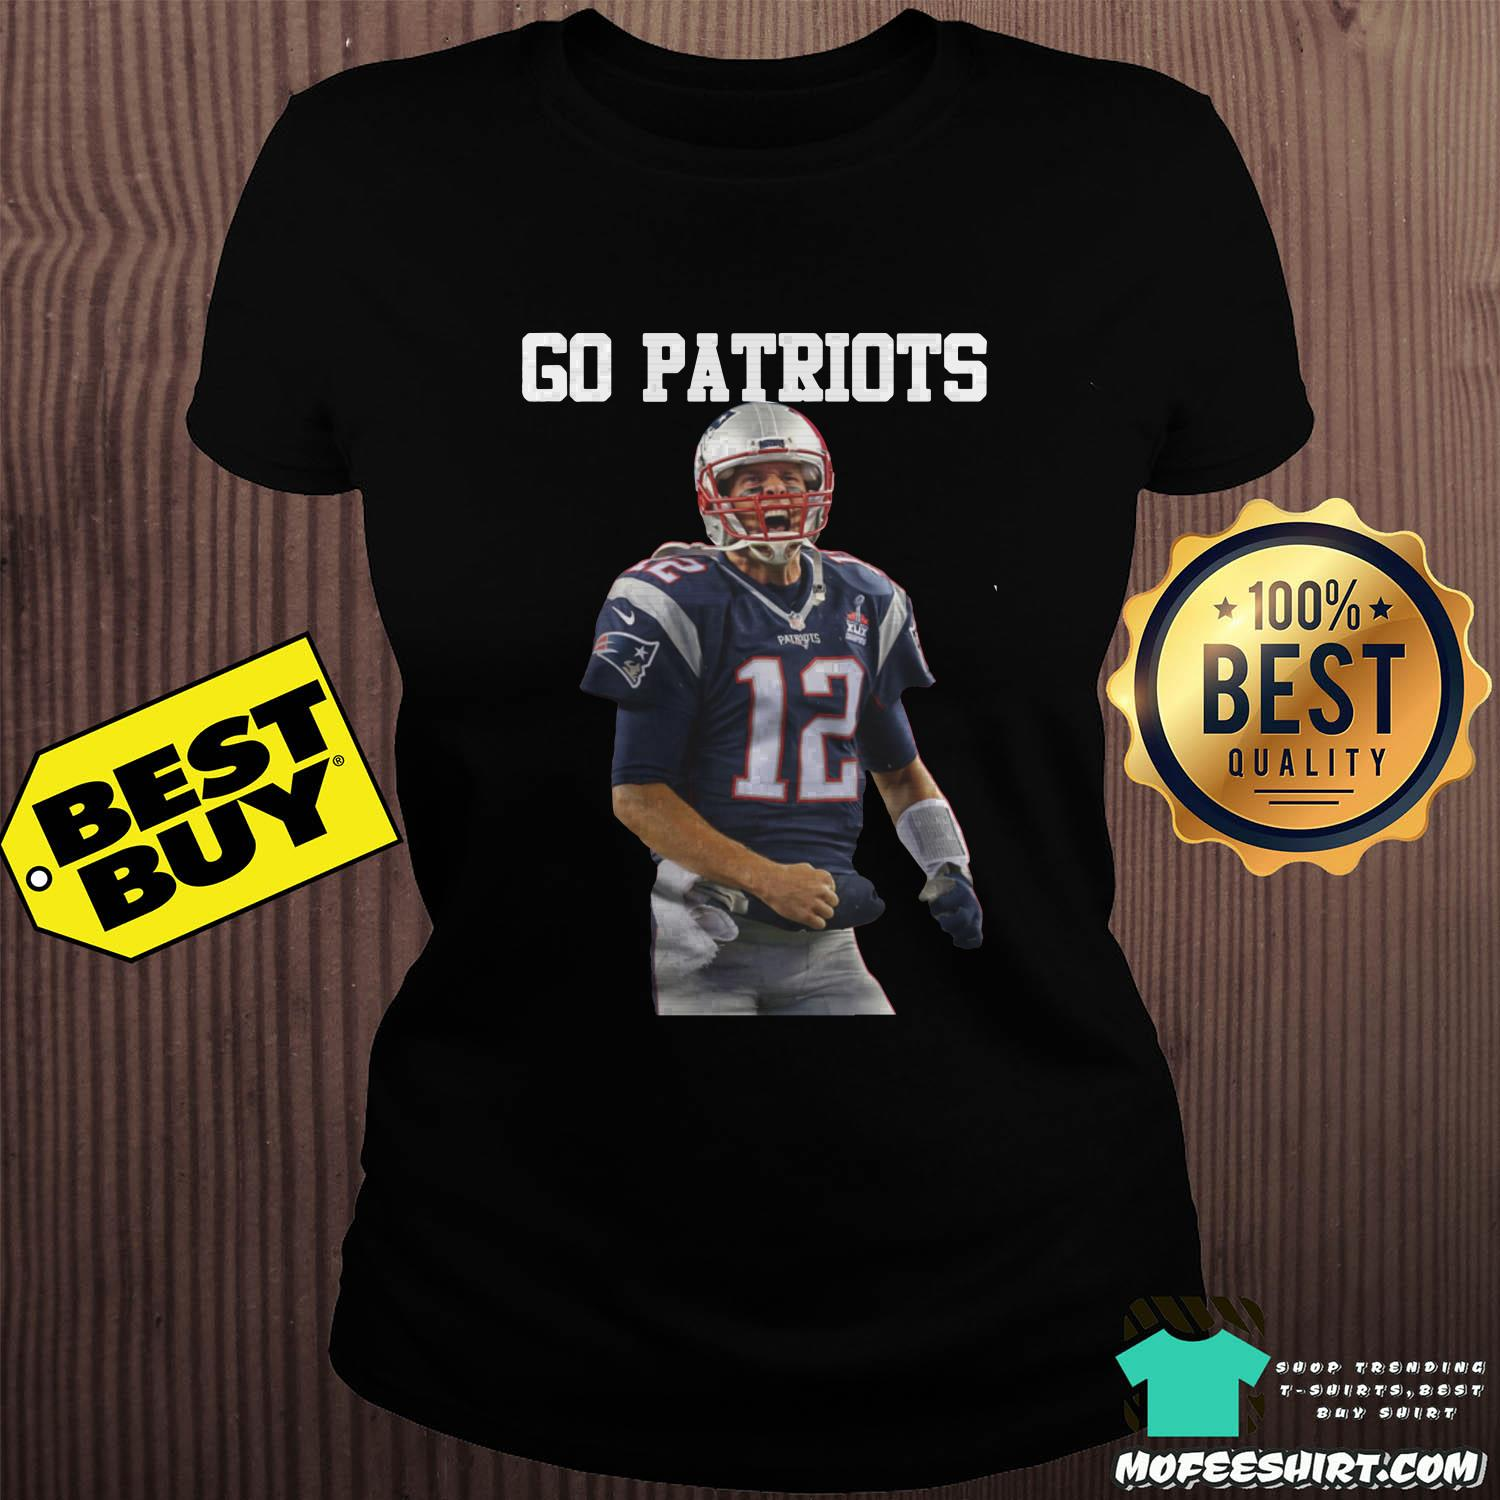 tom brady go patriots 12 rugby ladies tee - Tom Brady Go Patriots 12 Rugby Shirt